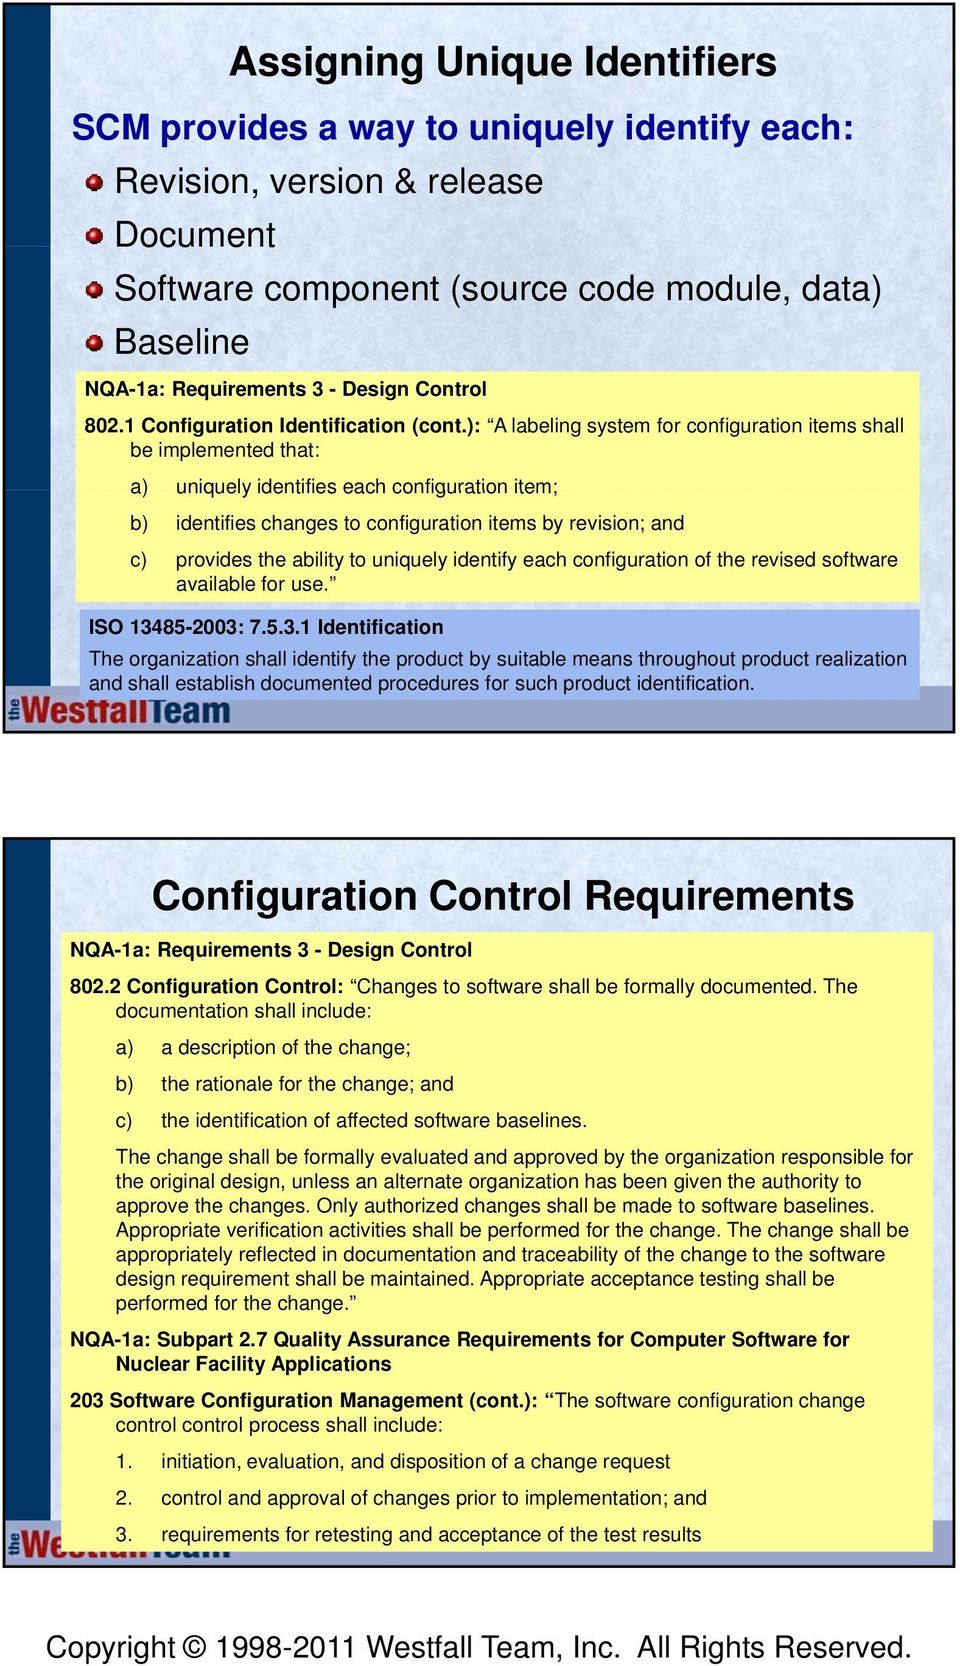 ): A labeling system for configuration items shall be implemented that: a) uniquely identifies each configuration item; b) identifies changes to configuration items by revision; and c) provides the